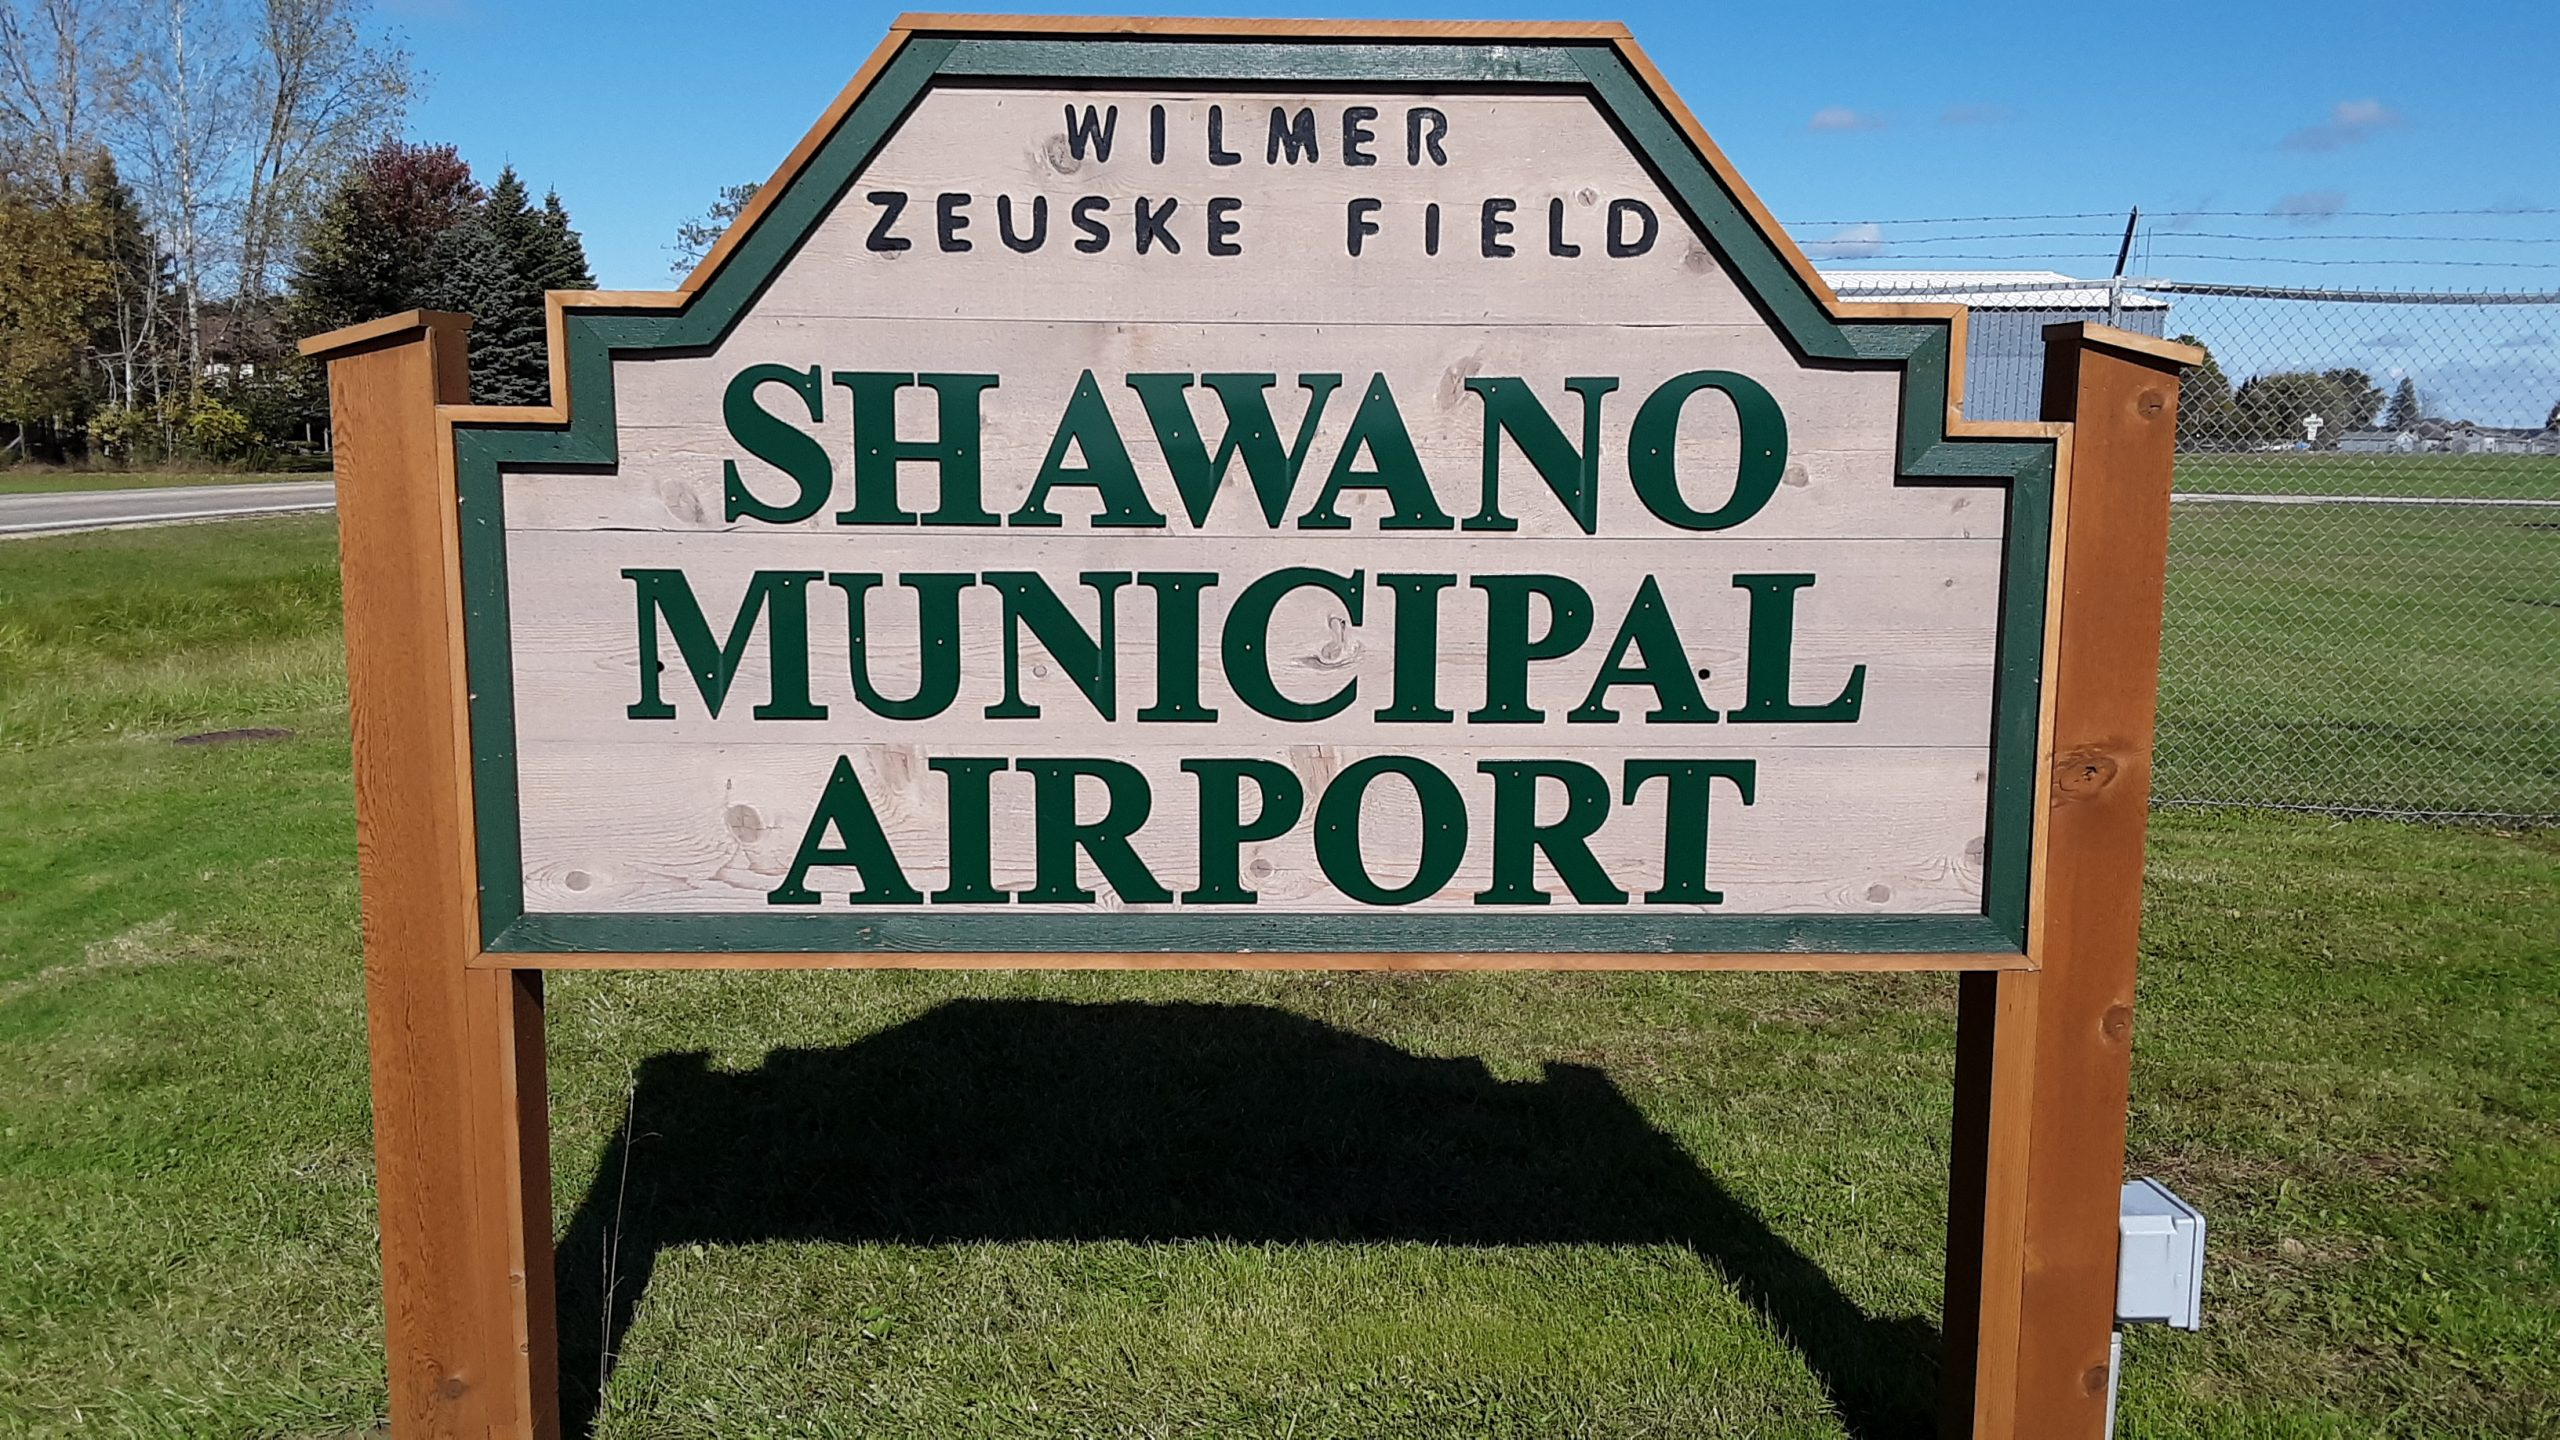 Everything that you need to know about Shawano